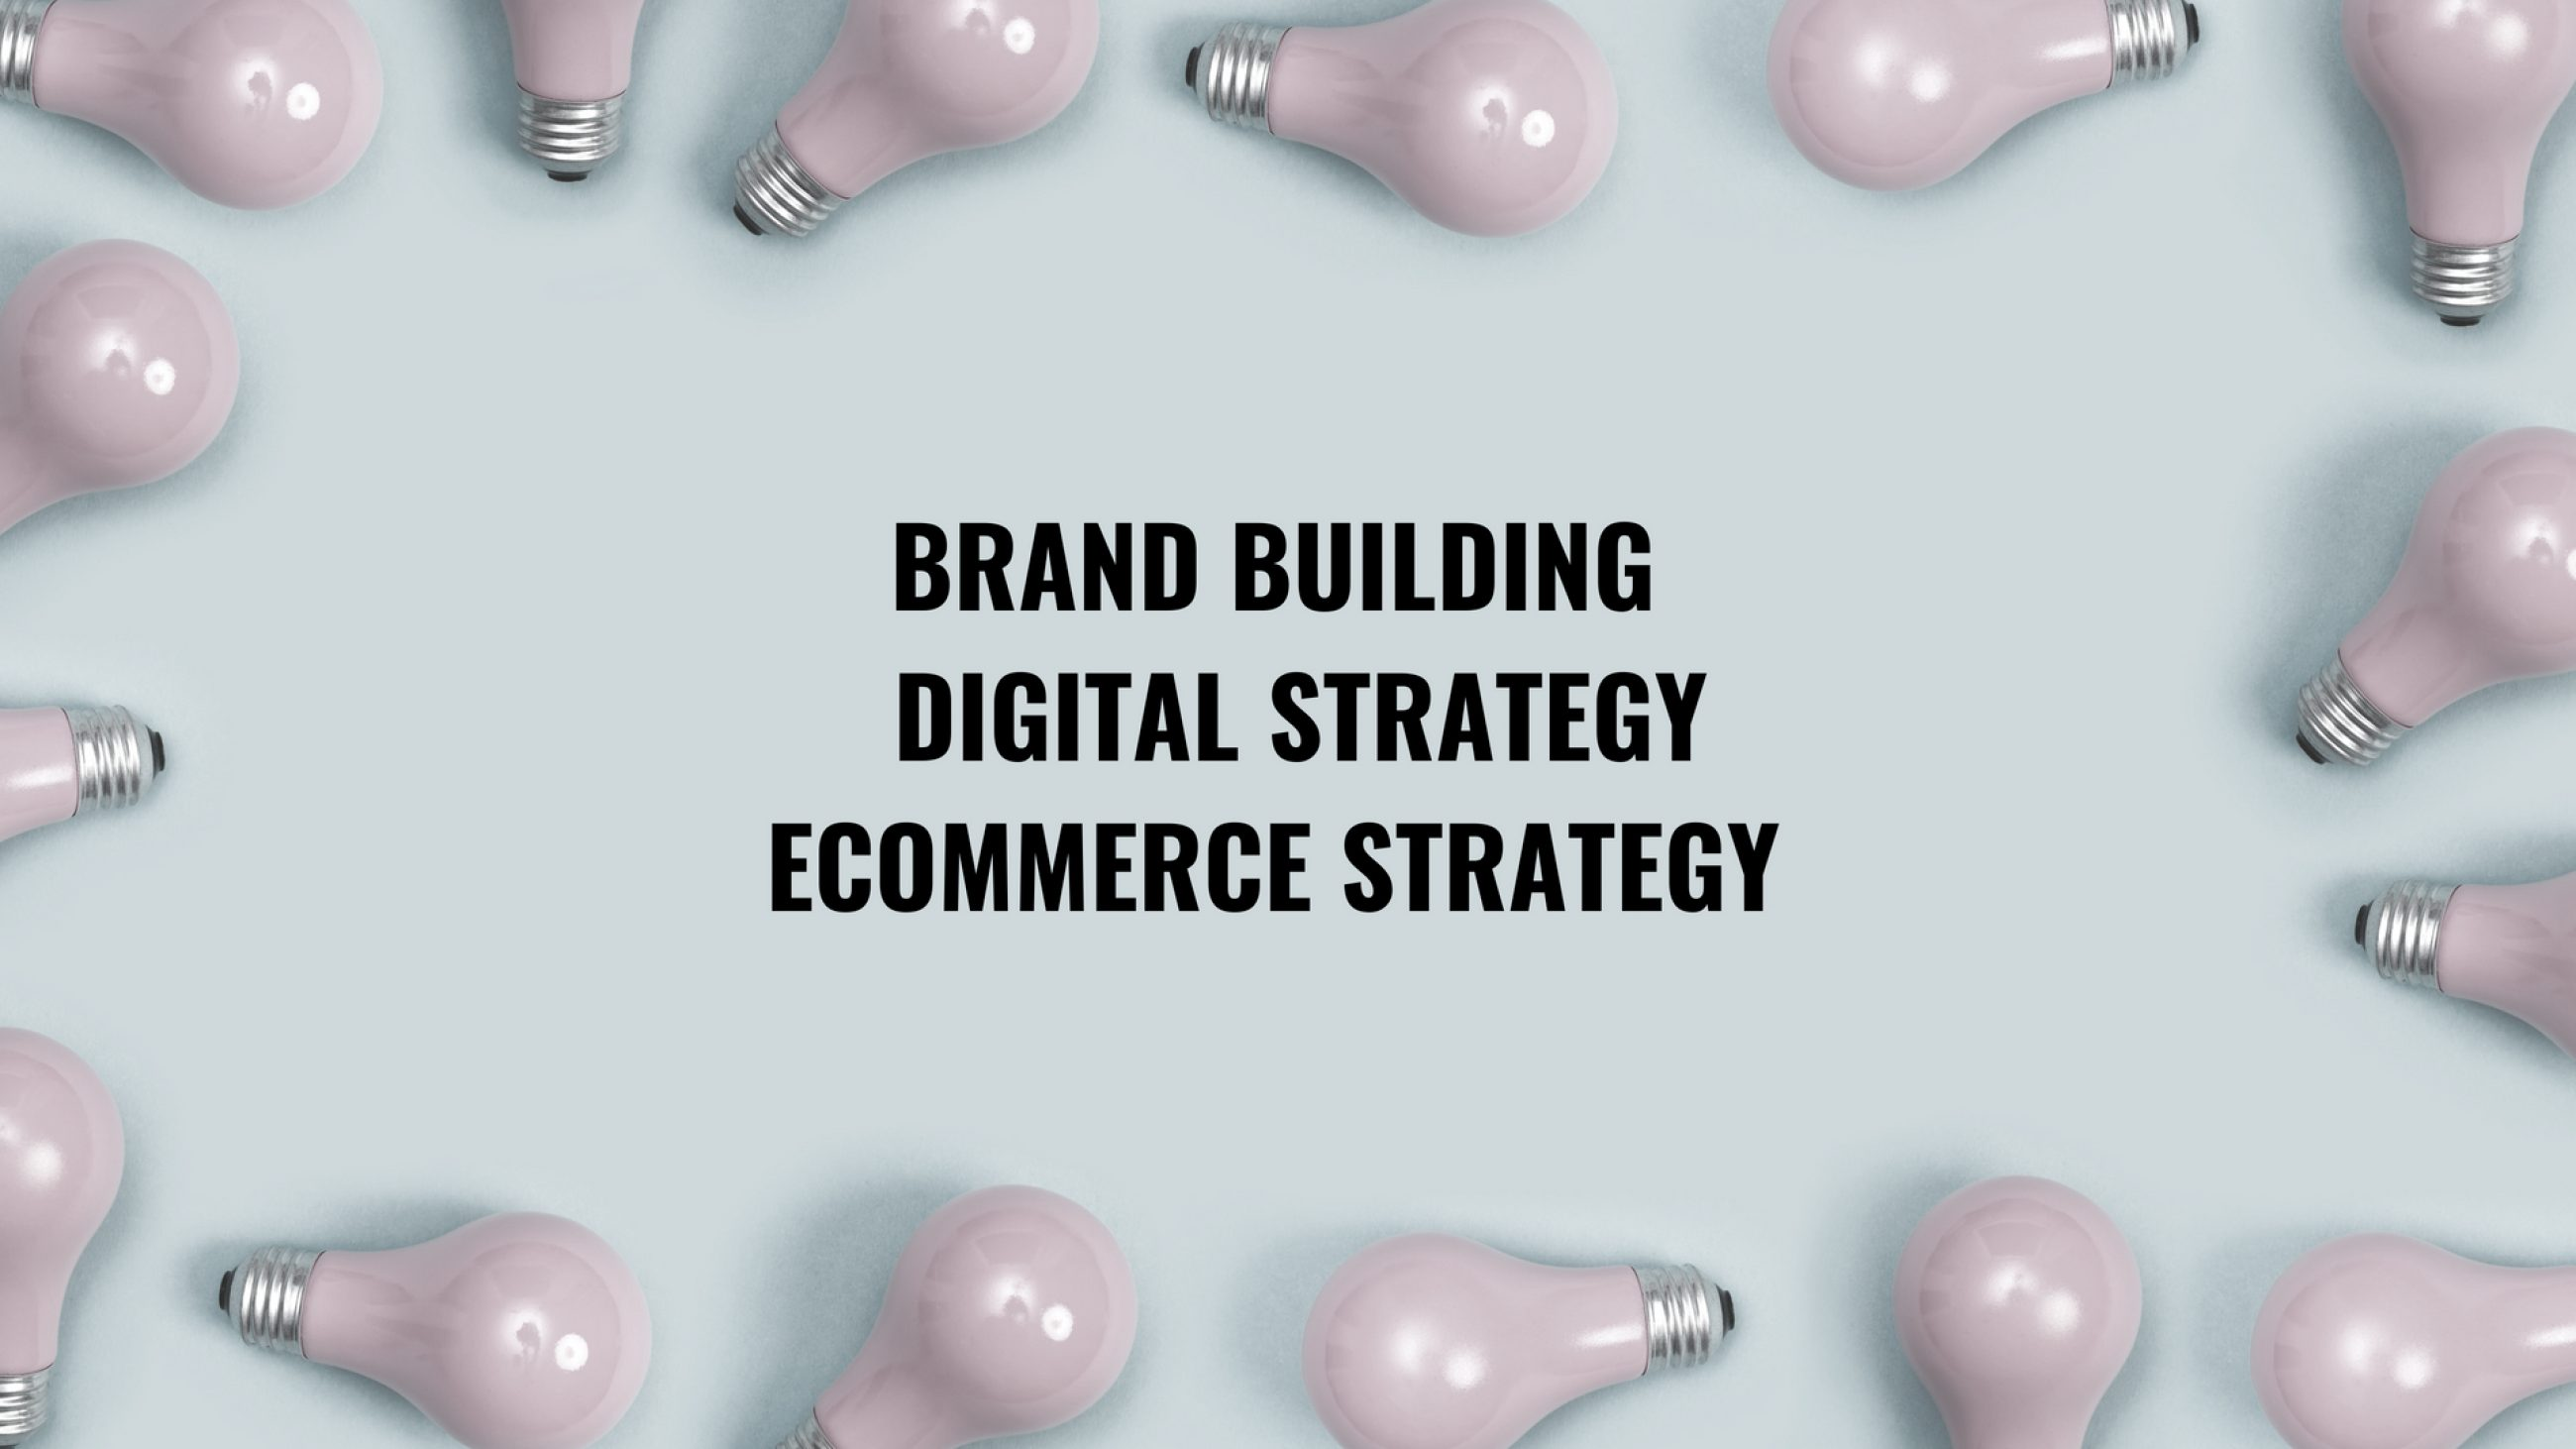 cropped-brand-building-digital-strategy-ecommerce-expertise-8.jpg